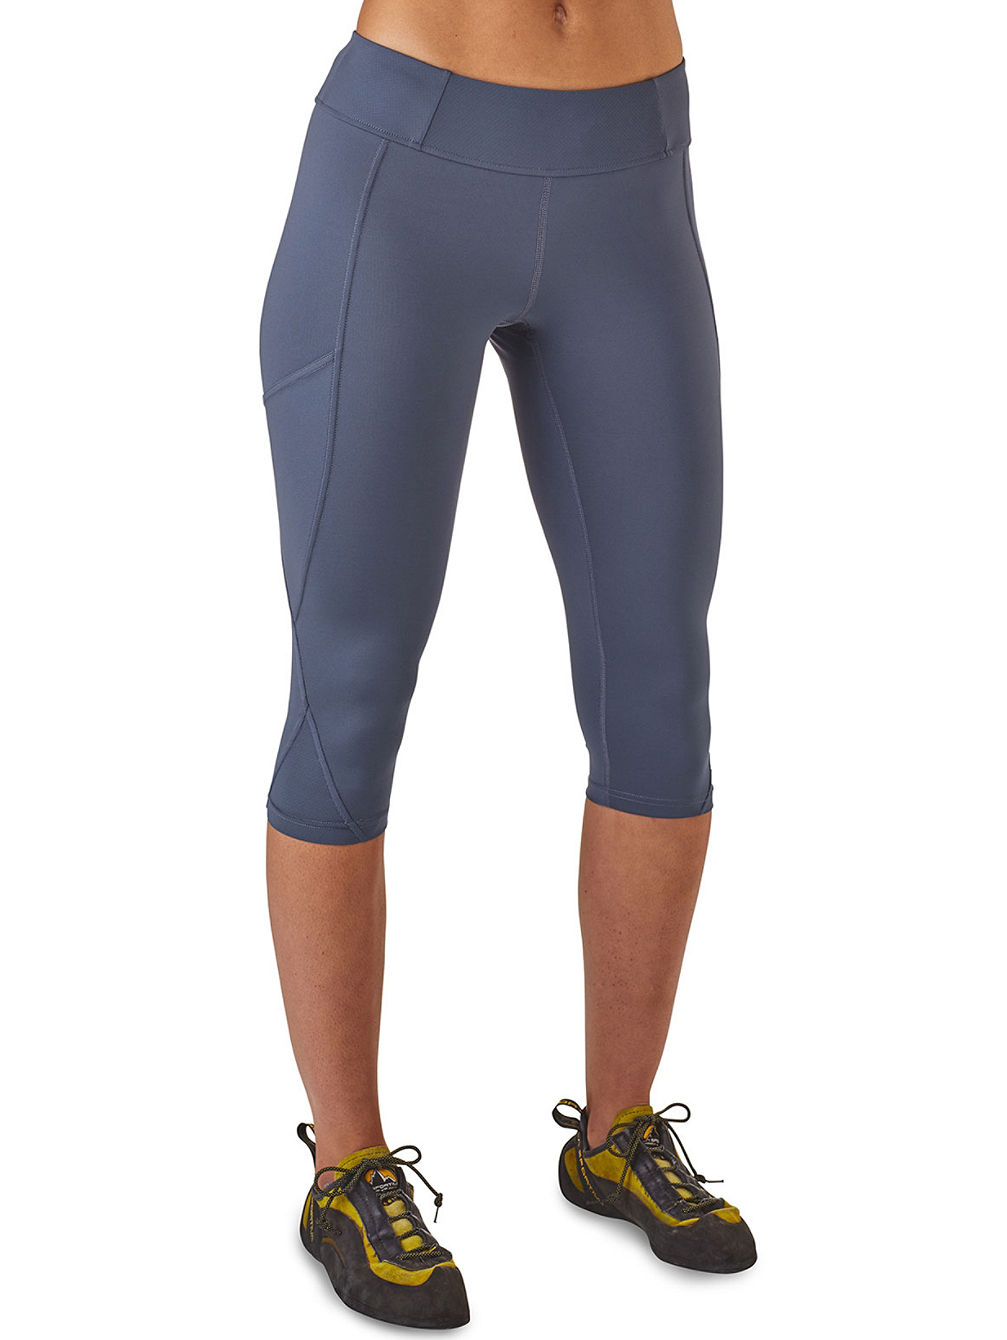 Fina Rock Crop Outdoor Pants